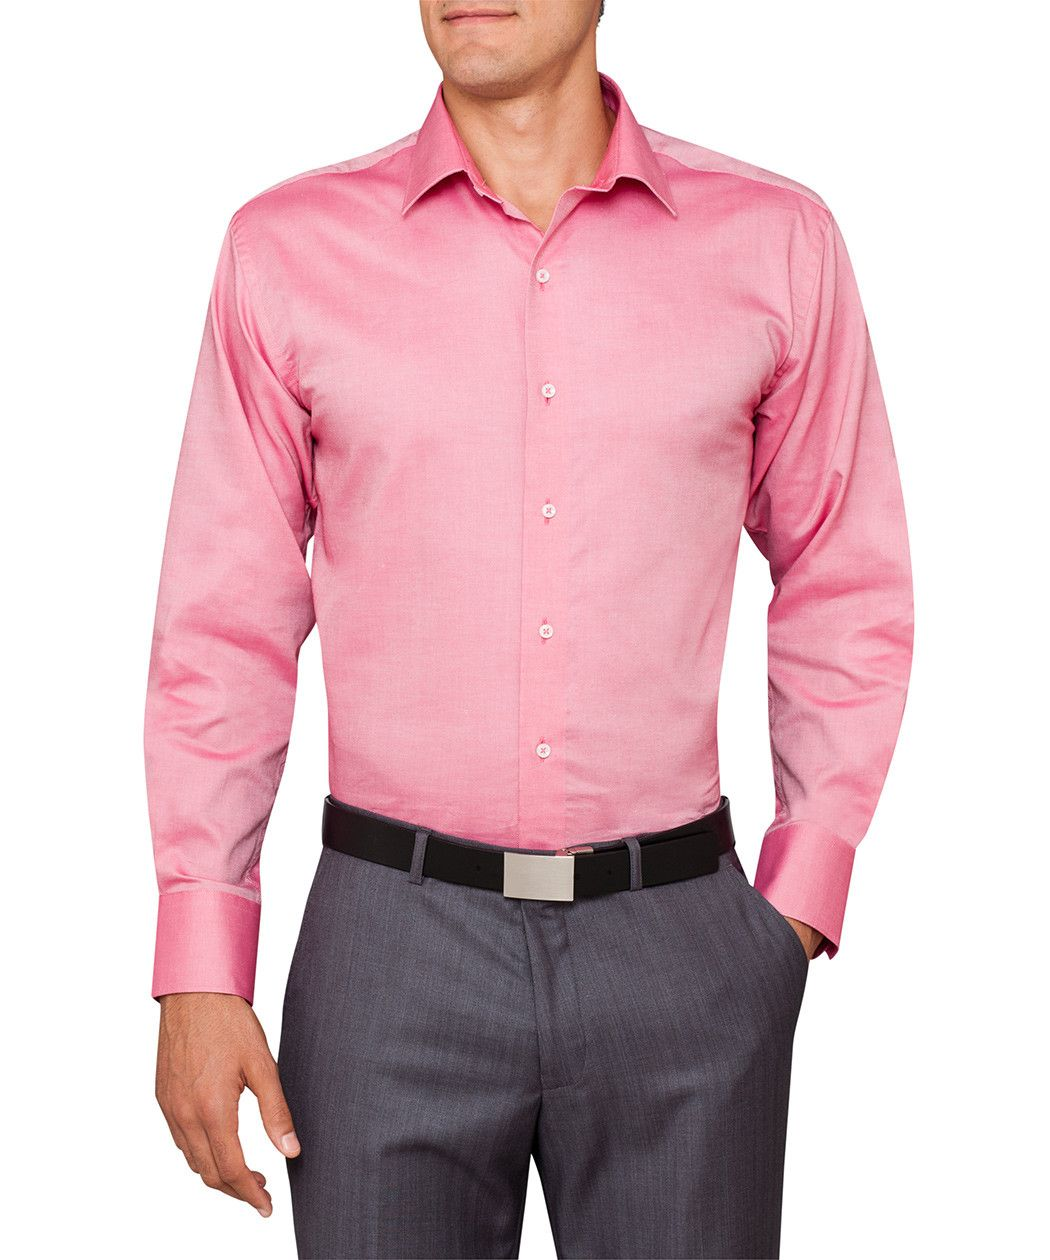 lets buy men's business shirts online at our shopping online ...